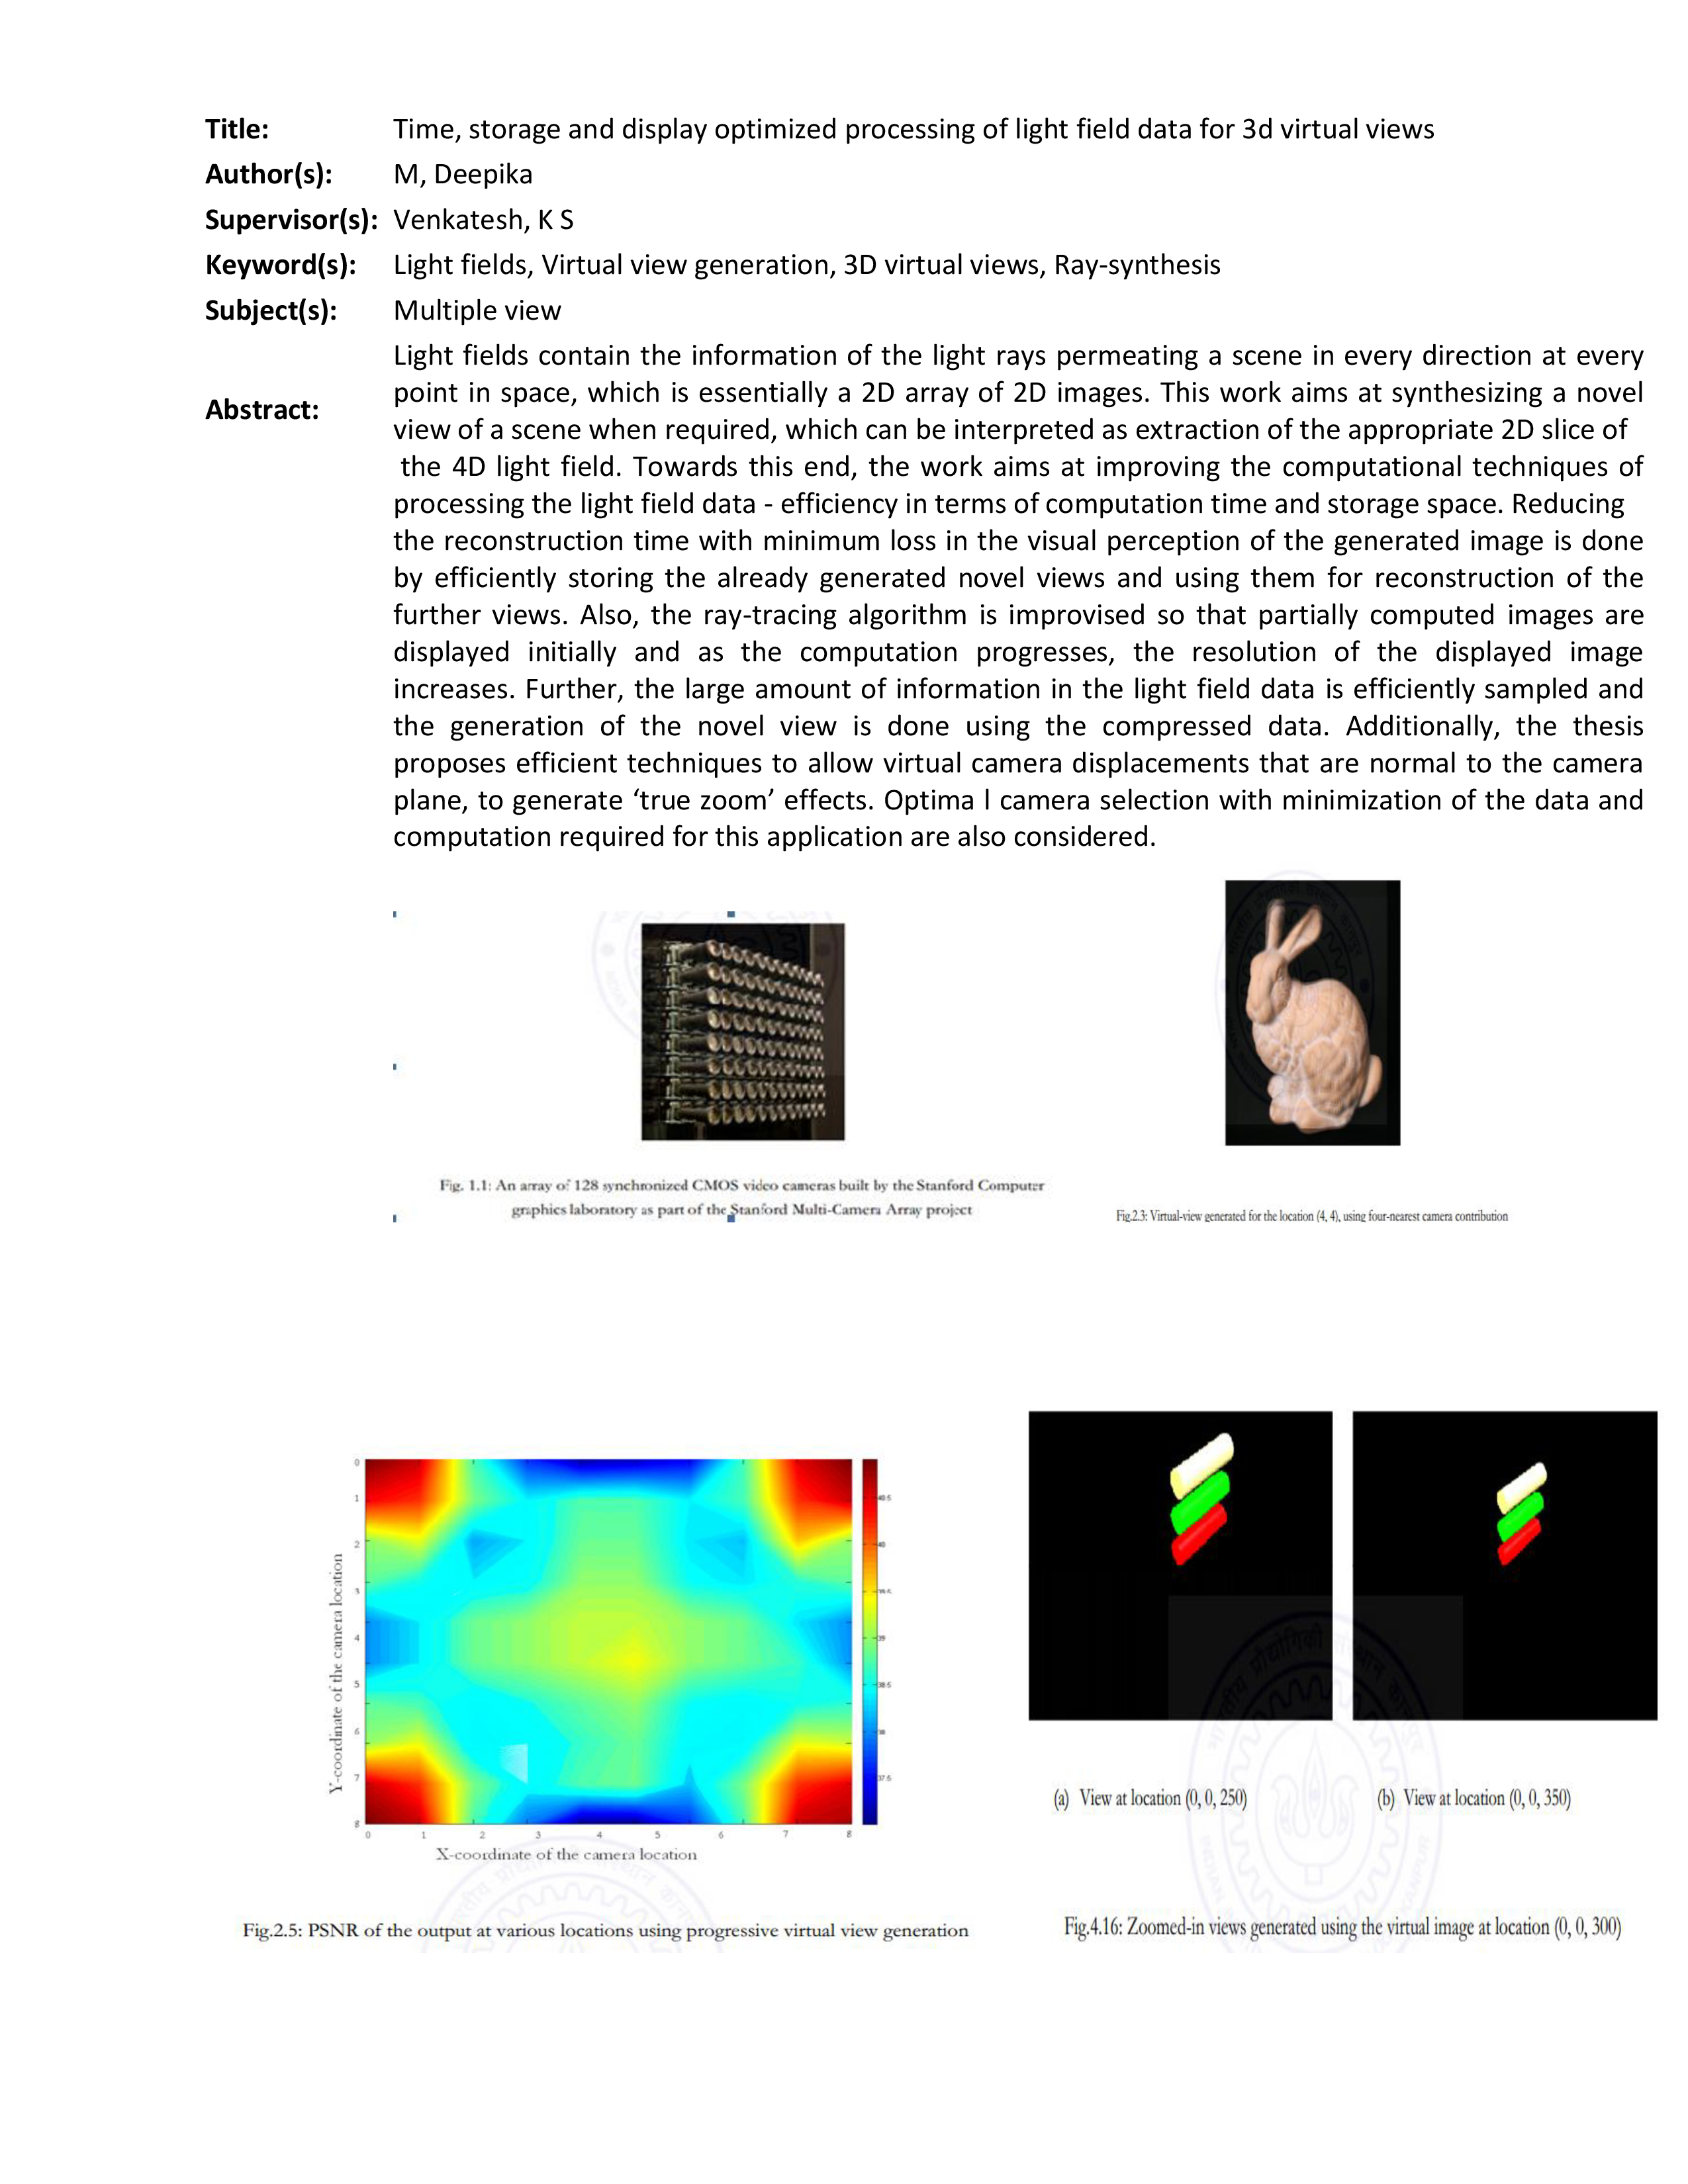 m tech thesis on image processing